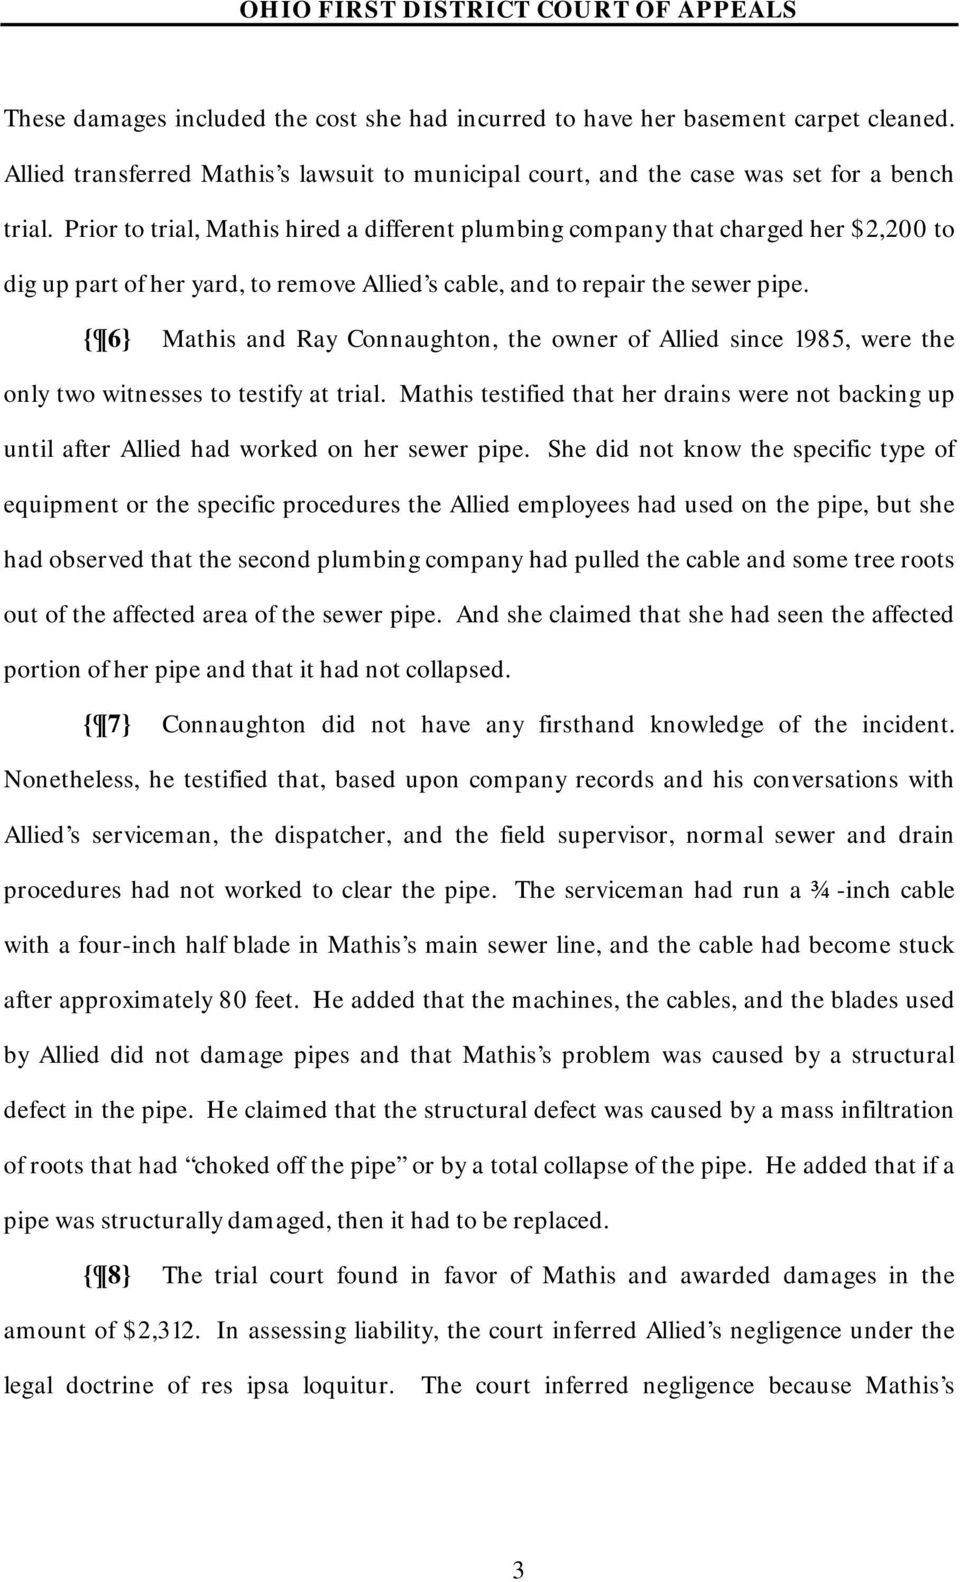 { 6} Mathis and Ray Connaughton, the owner of Allied since 1985, were the only two witnesses to testify at trial.